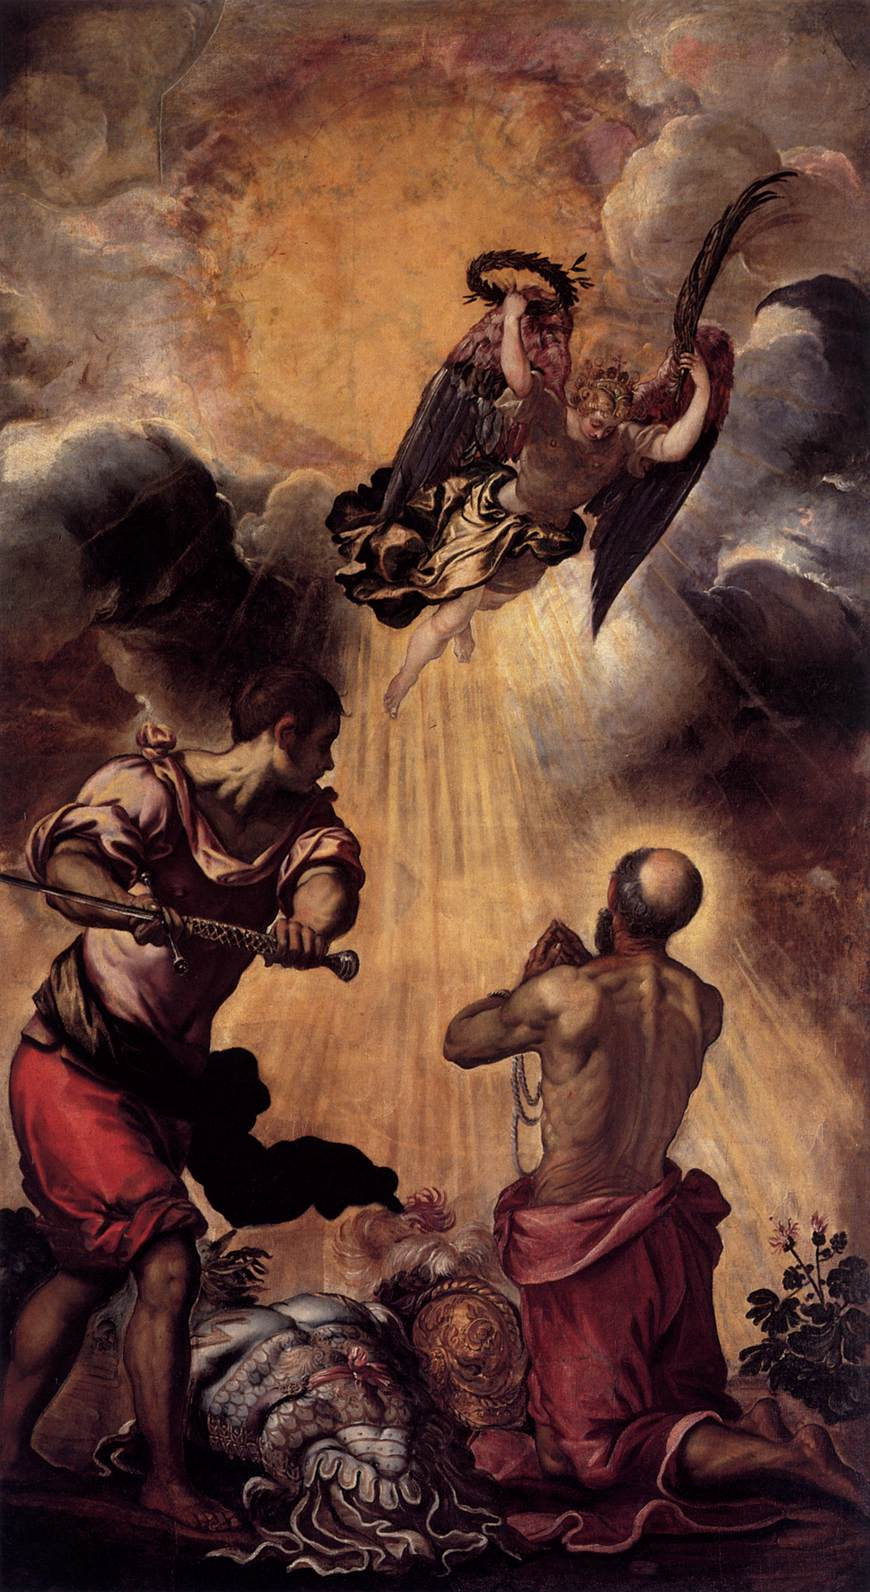 tintoretto-st_paul-1556.jpg